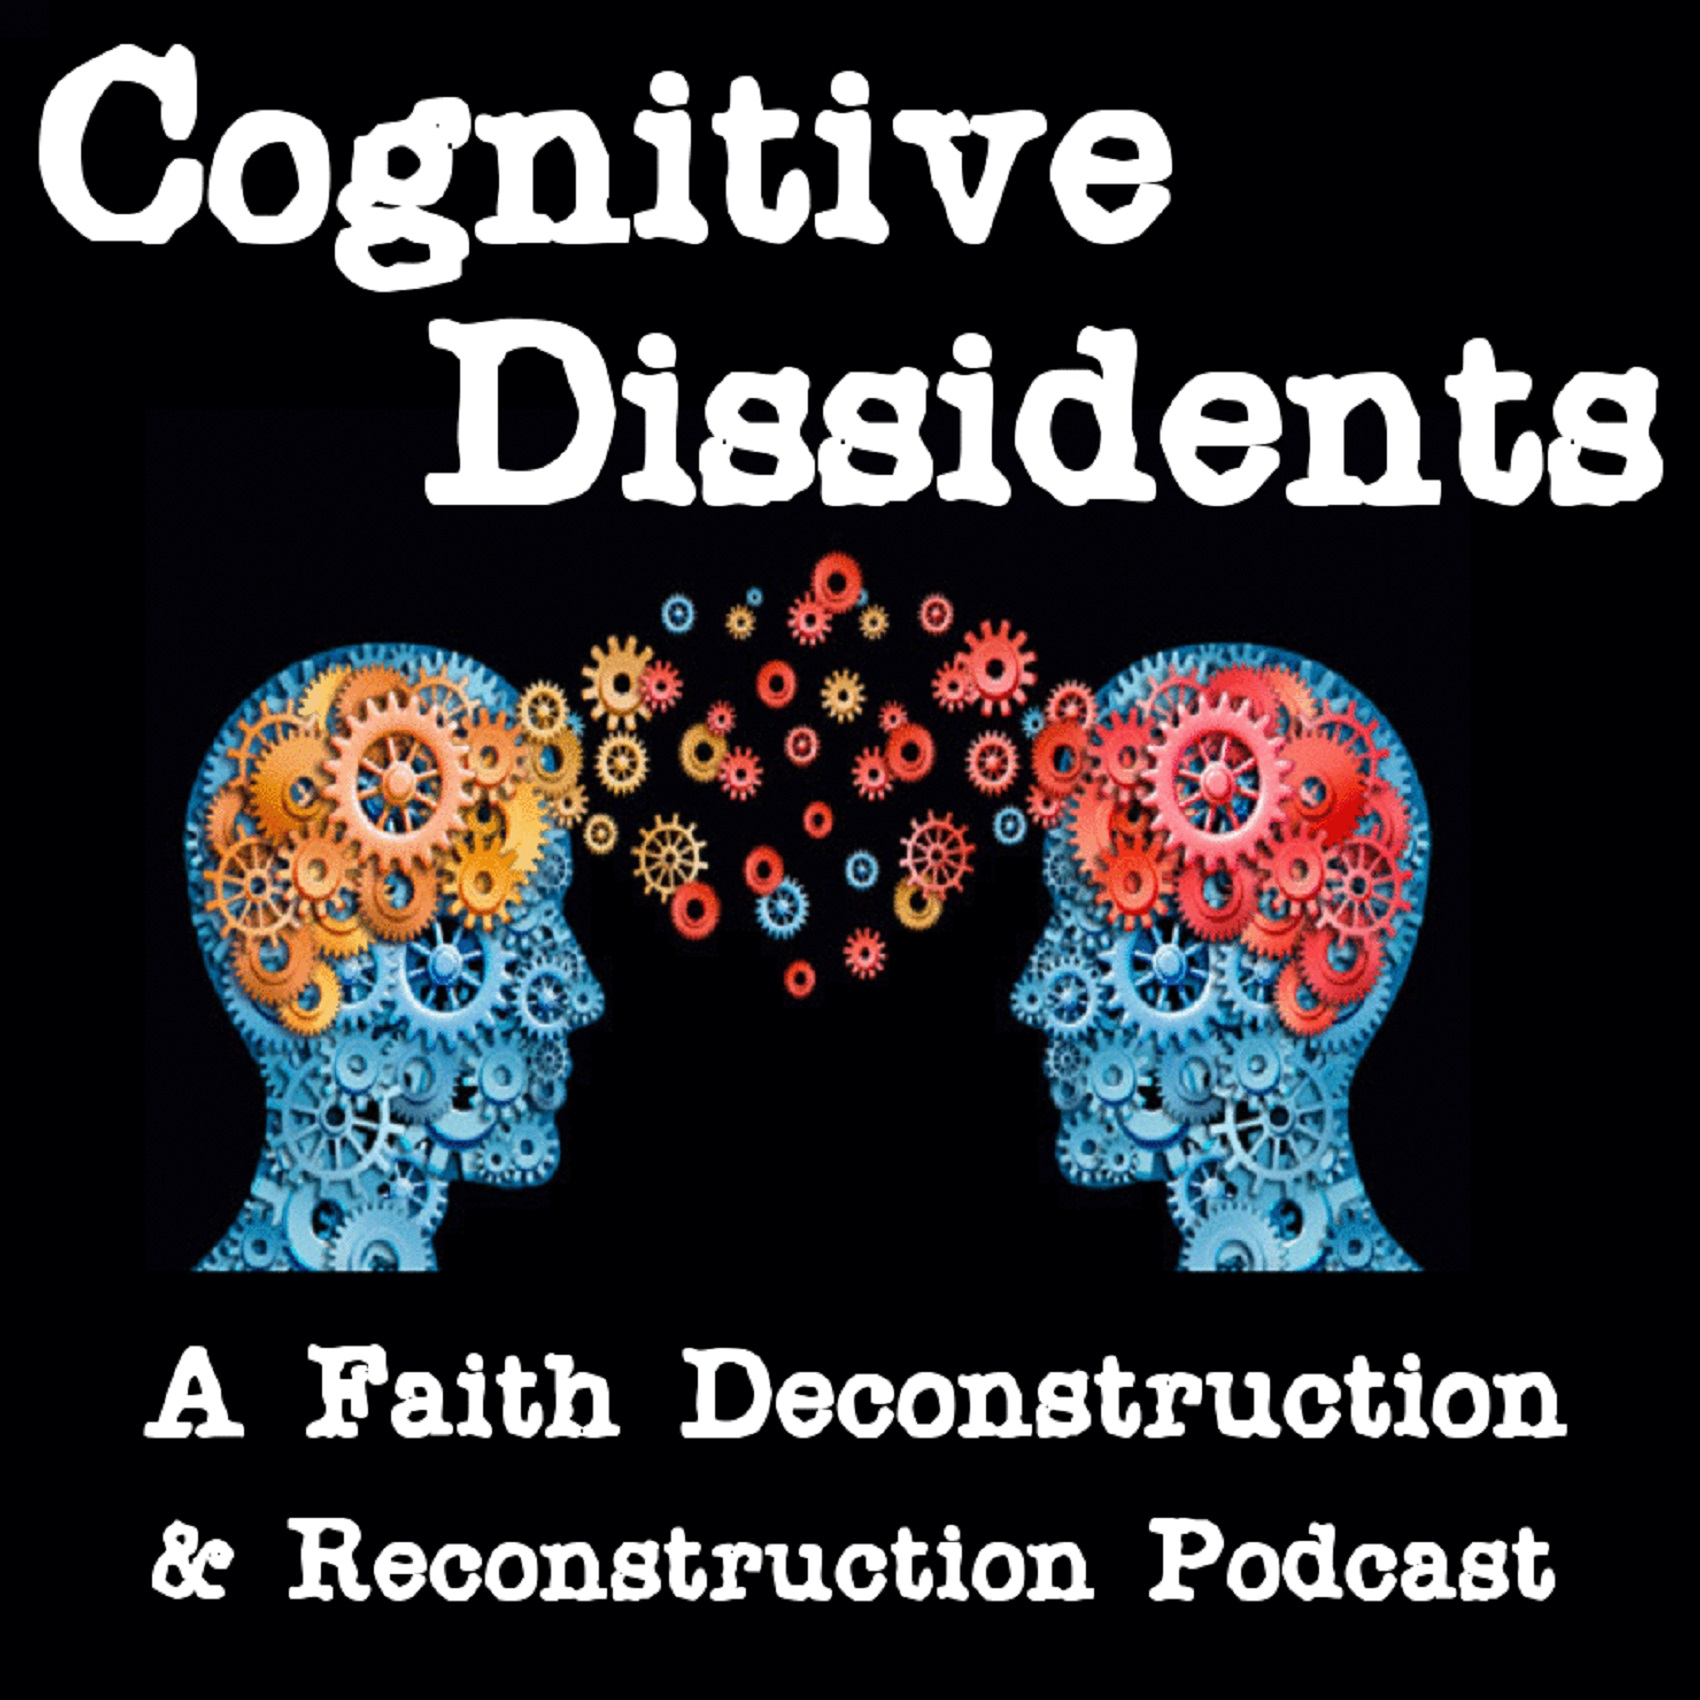 The Cognitive Dissidents Podcast